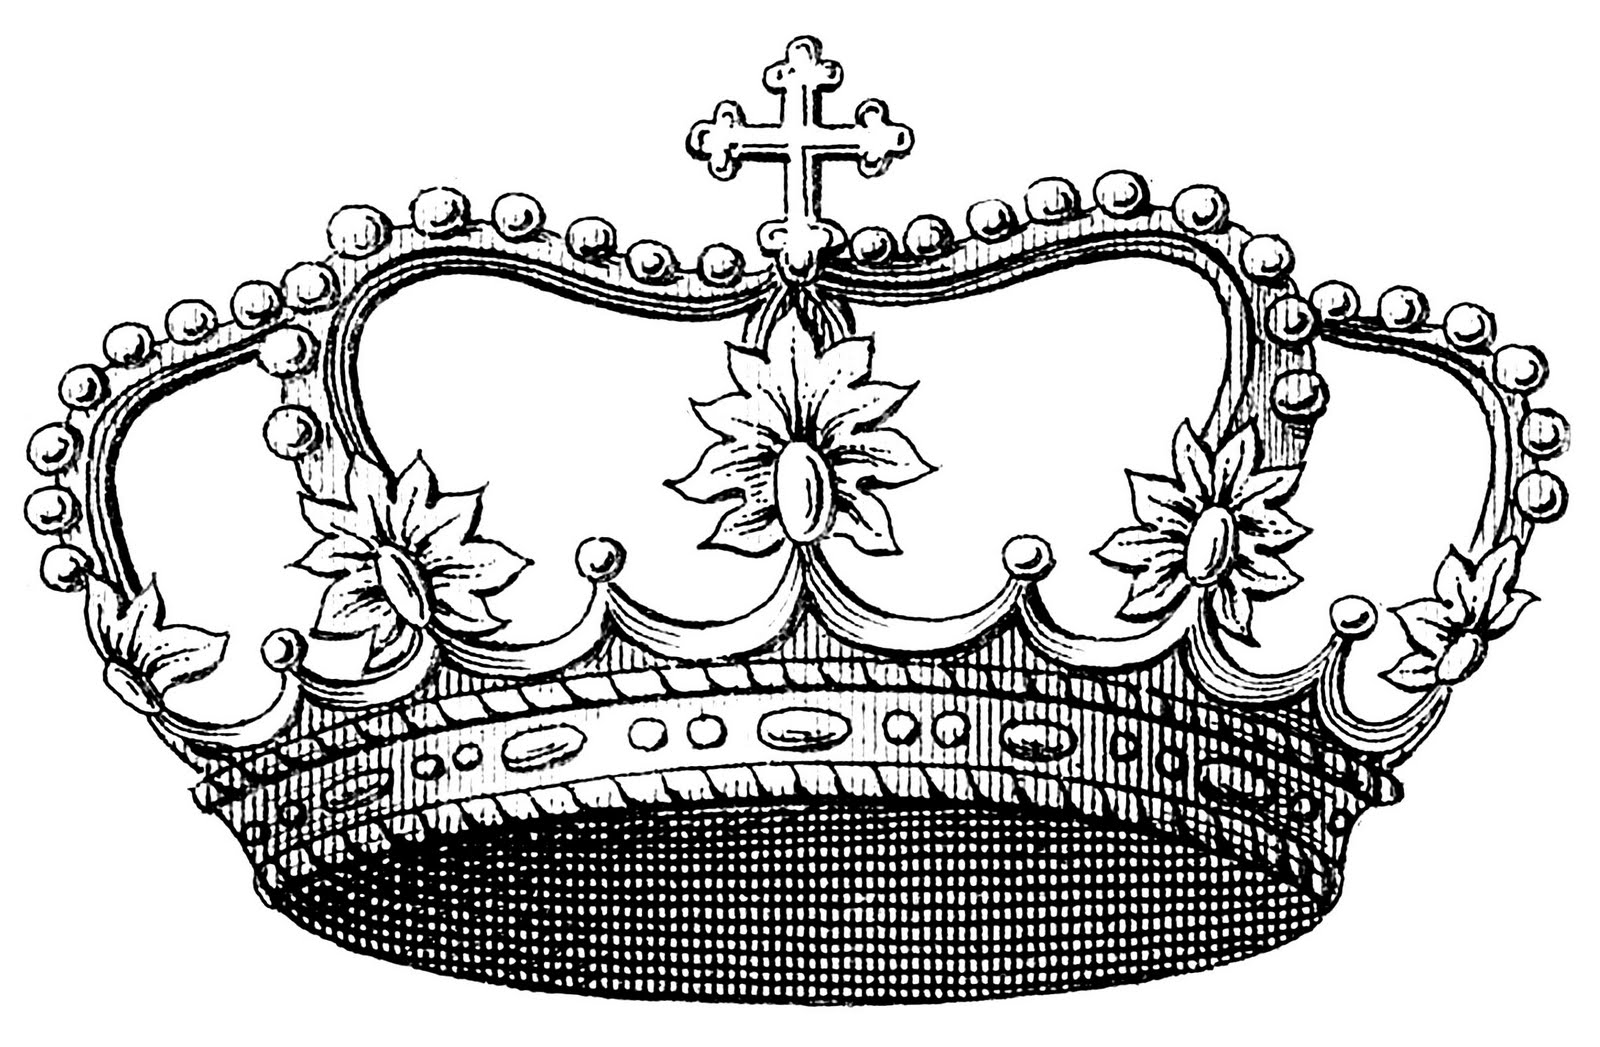 Queen crown clipart kid 3